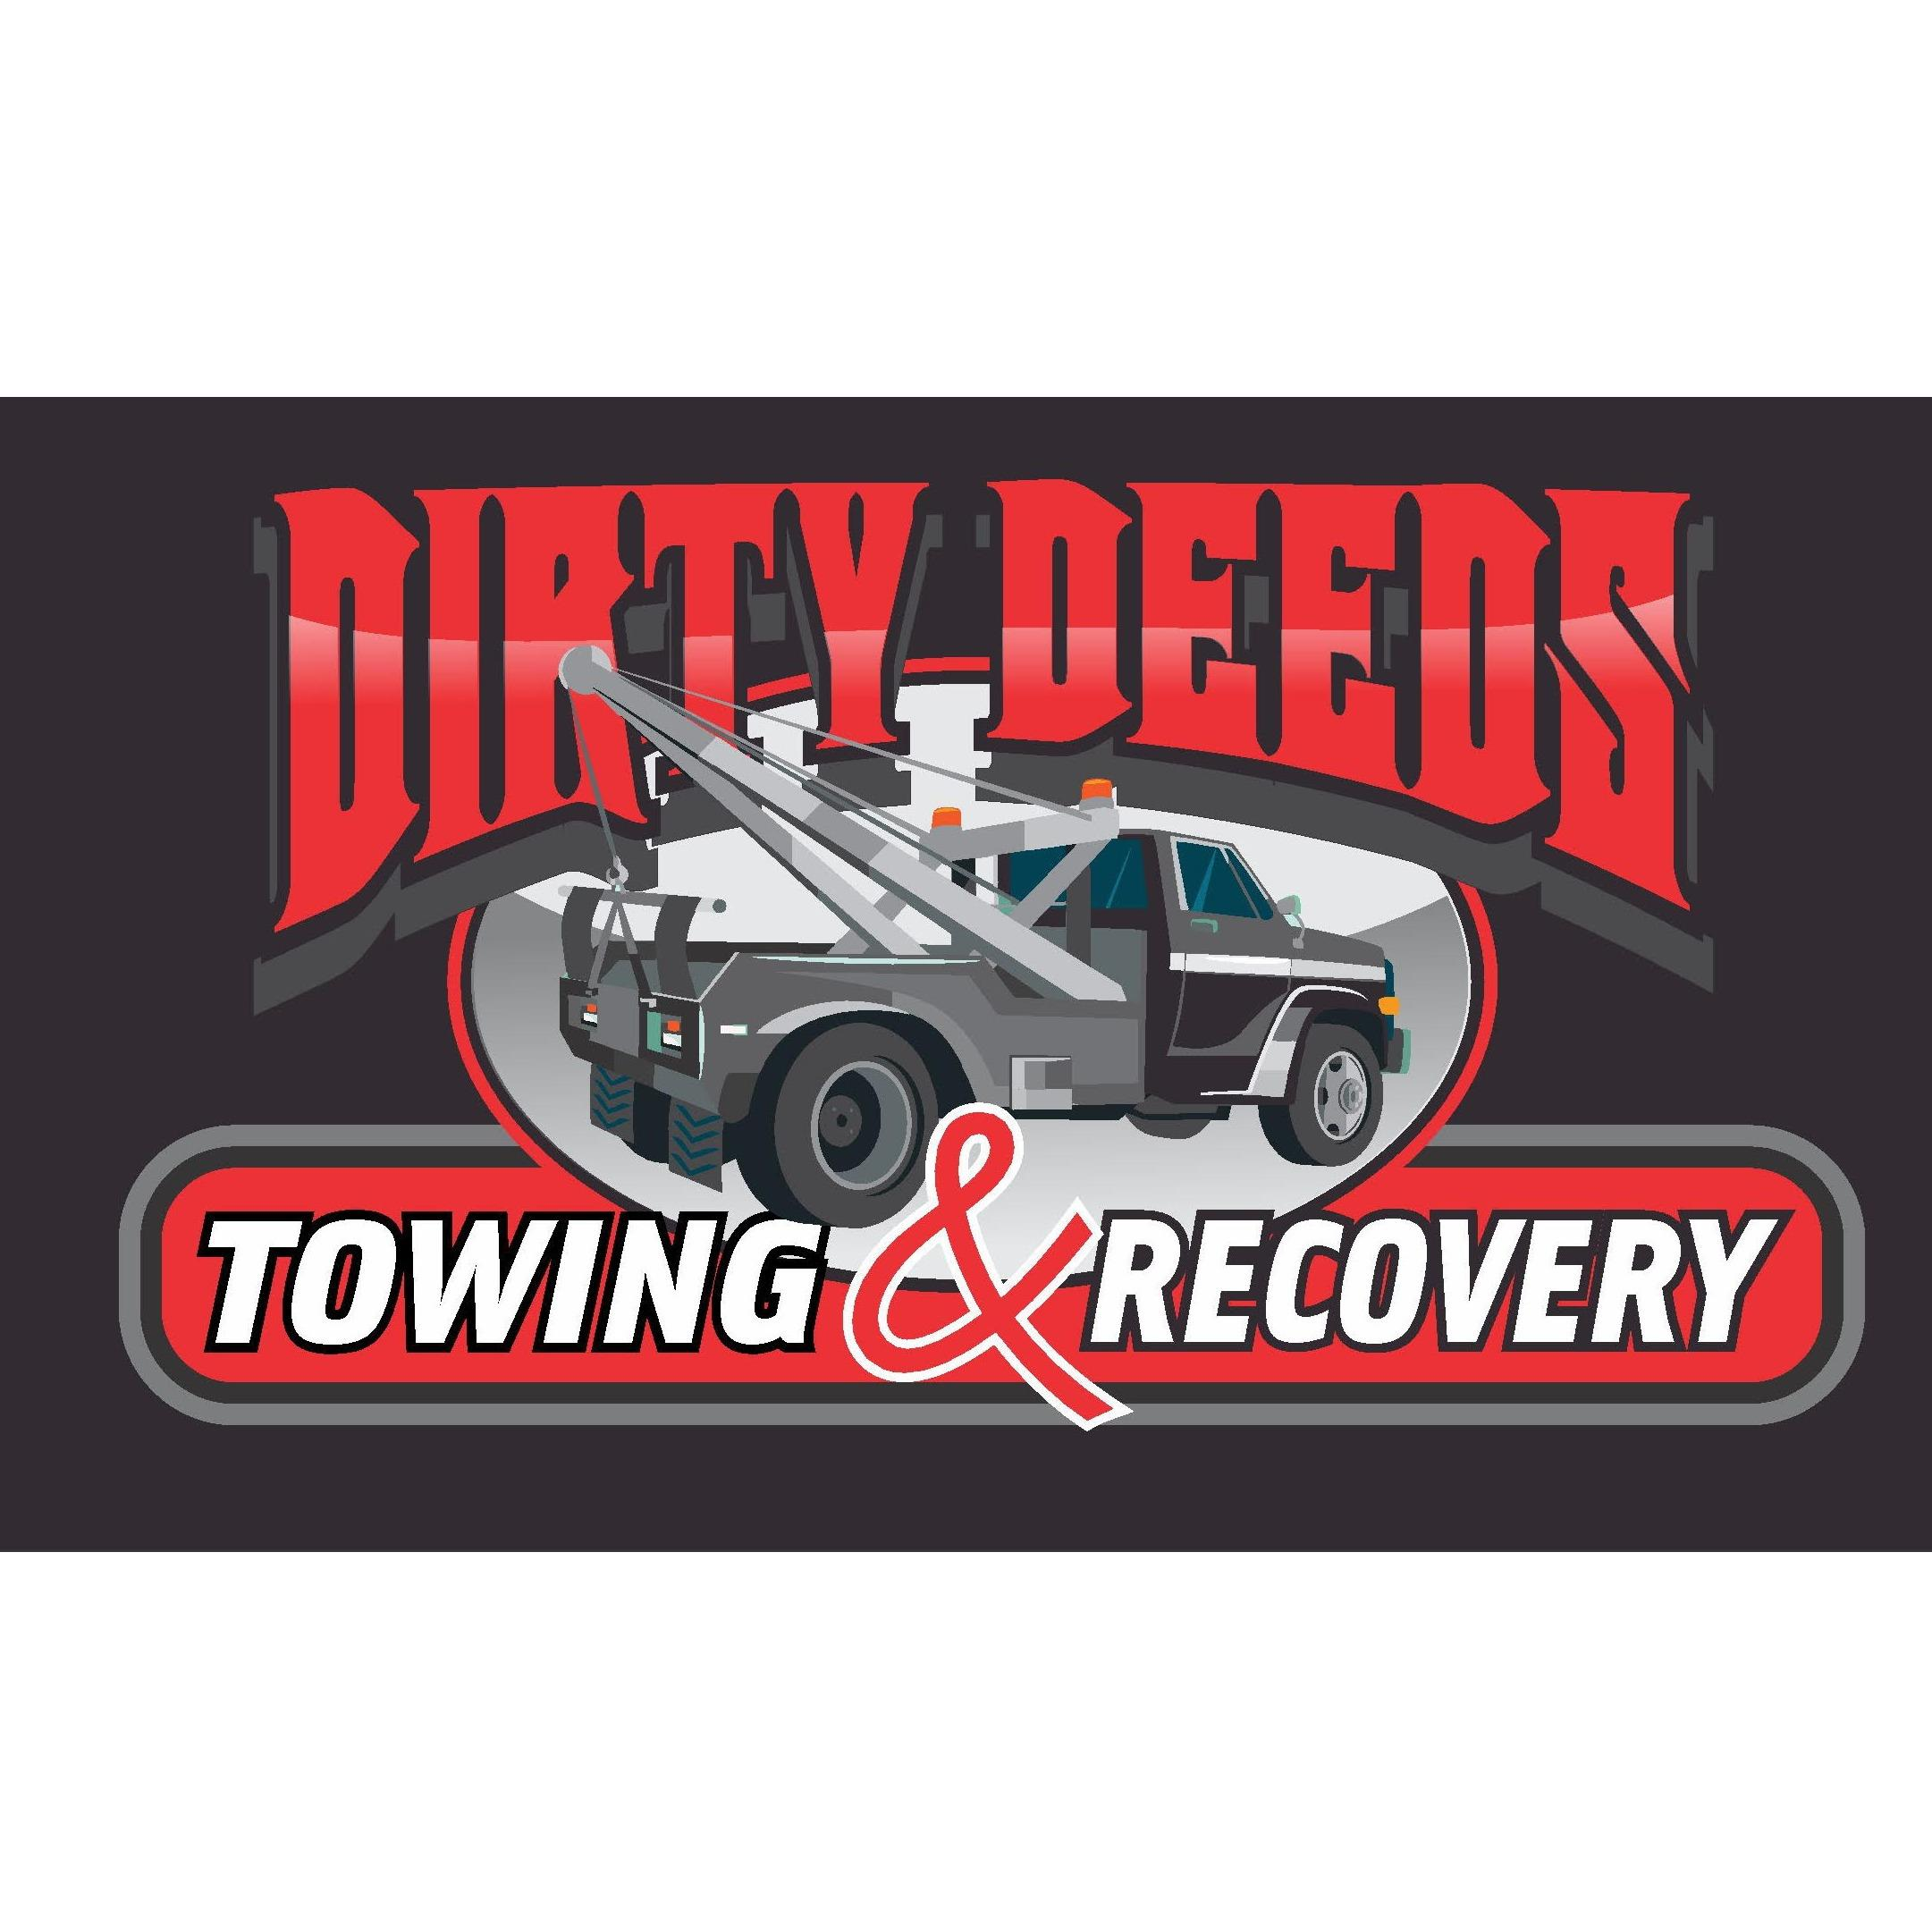 Dirty Deeds Towing and Recovery LLC